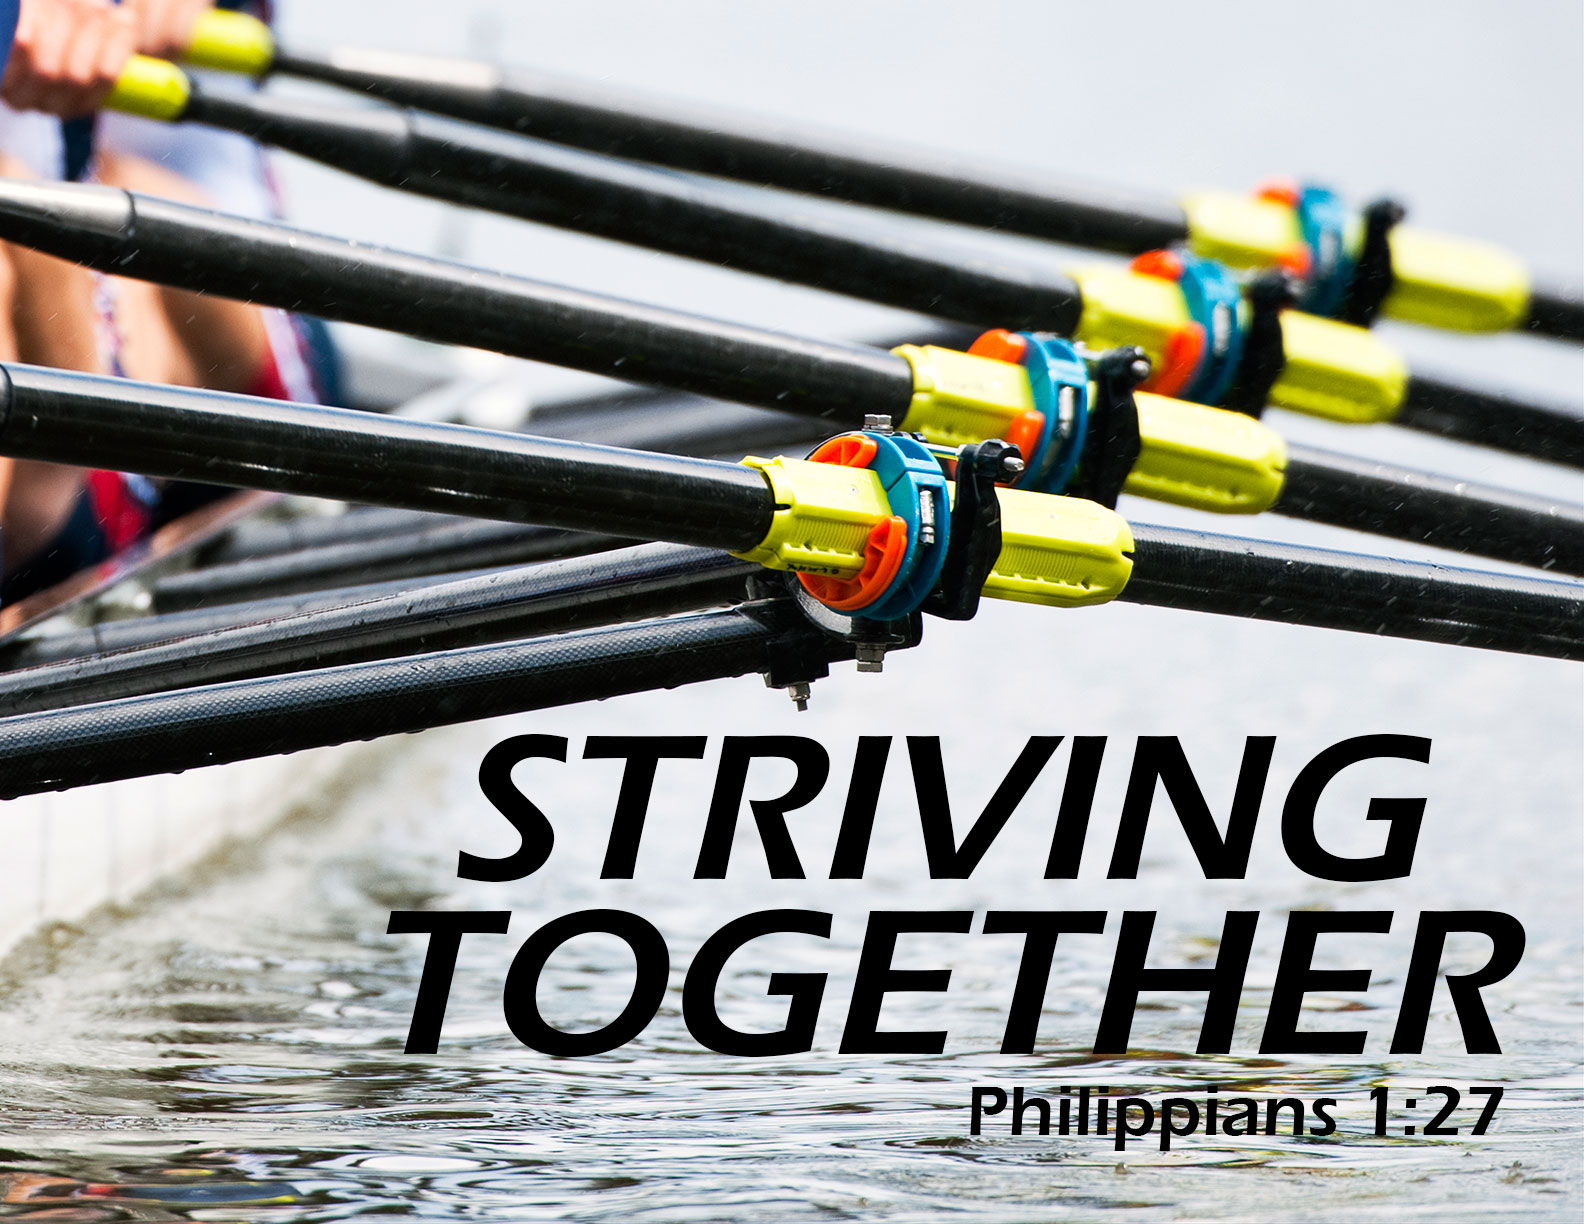 StrivingTogether-small-Aug-21-2015.jpg